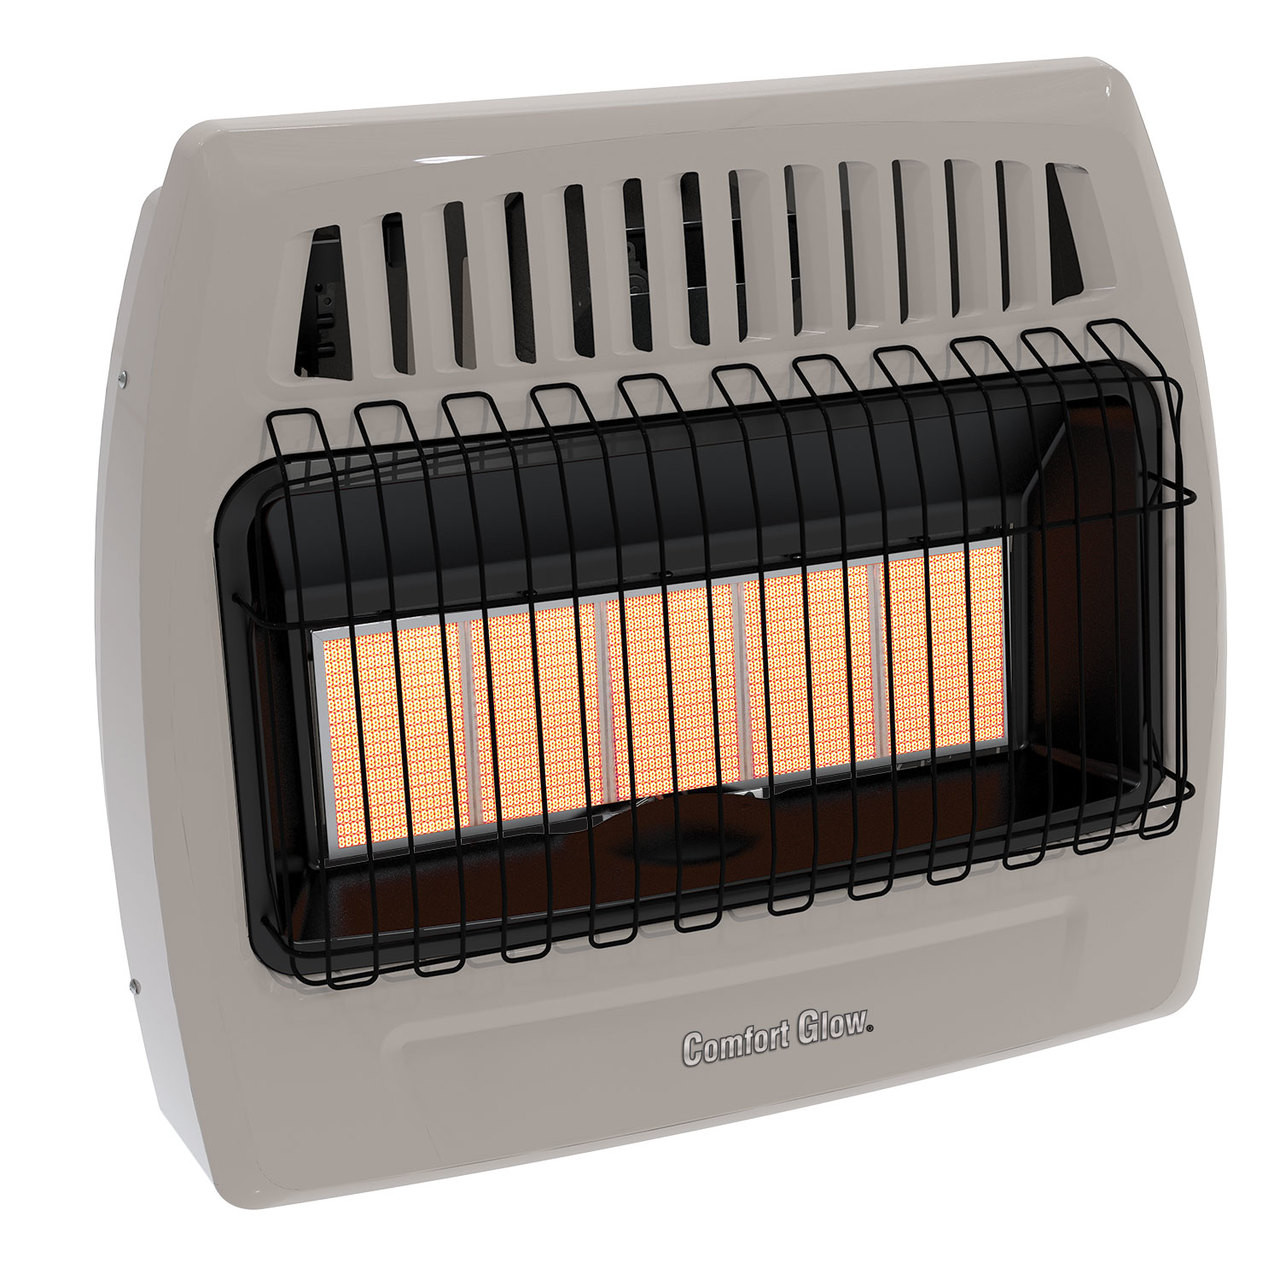 Comfort Glow Kwd526 30 000 Btu 5 Plaque Propane Lp Natural Gas Infrared Vent Free Wall Heater World Marketing Of America Inc